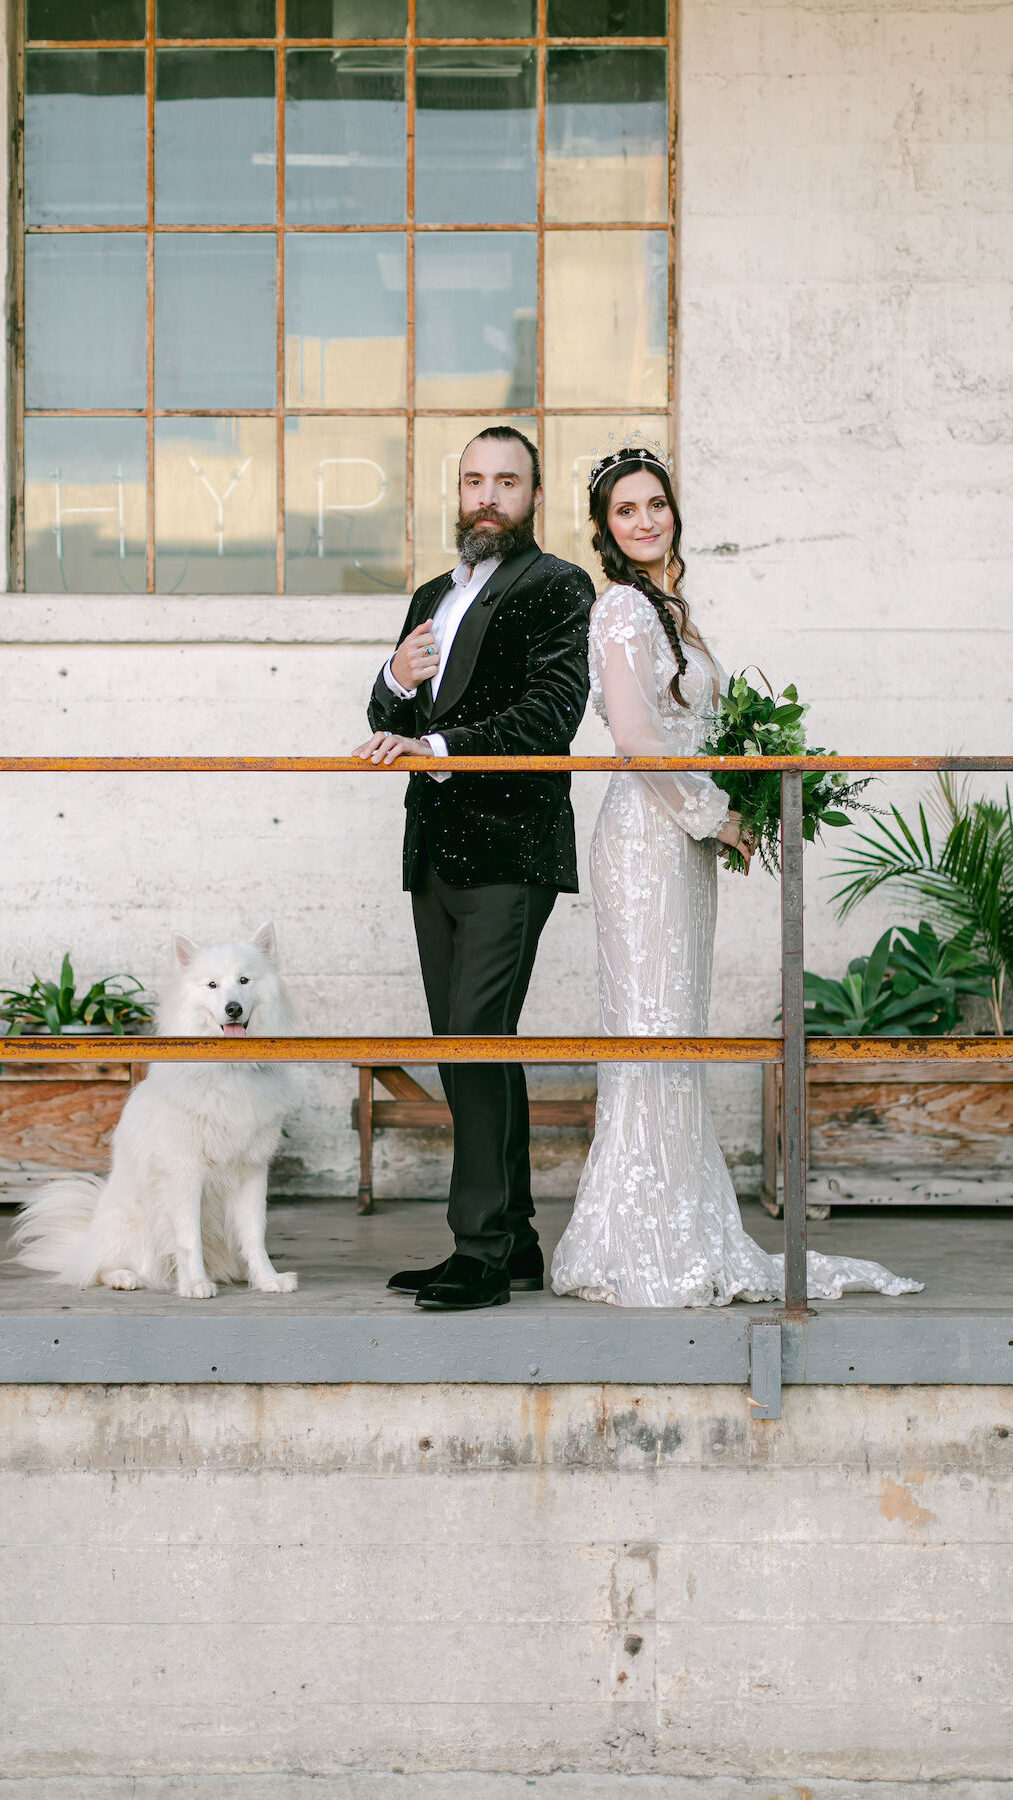 Bride and groom industrical wedding photo - Lily Tapia Photography